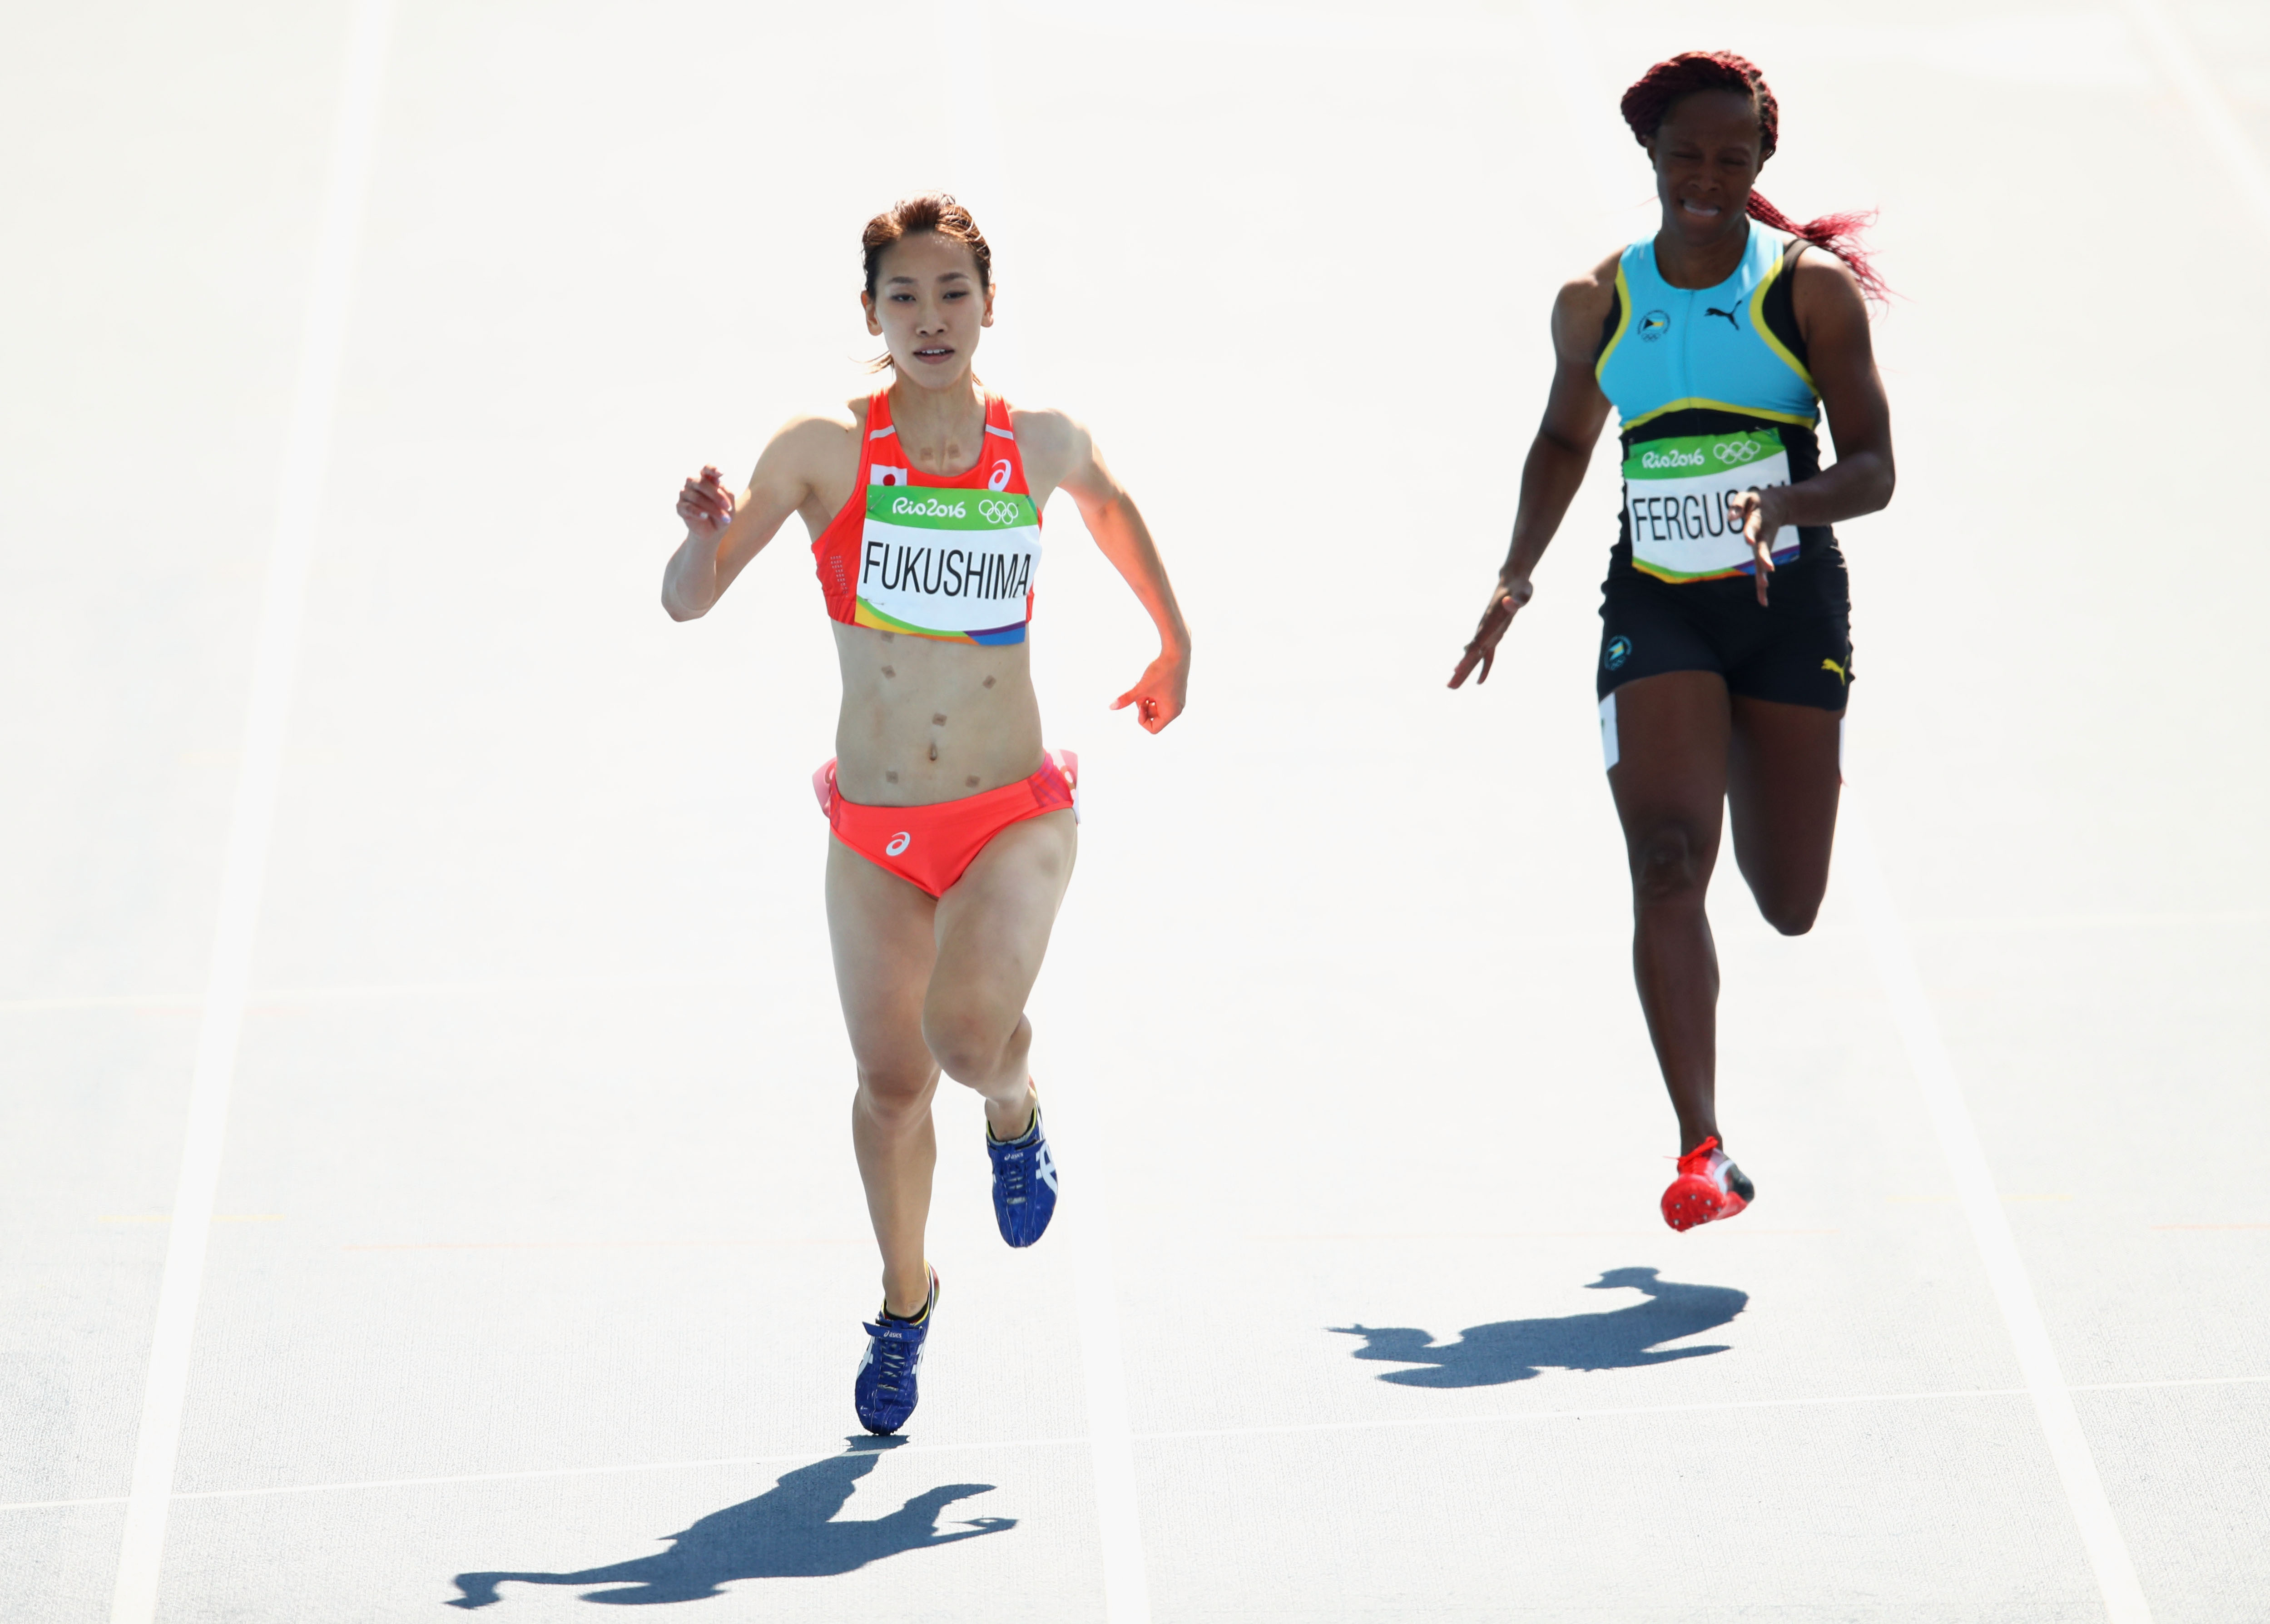 GettyImages 589706520 Heres Why Japans Chisato Fukushima Wore Patches While Running In Rio